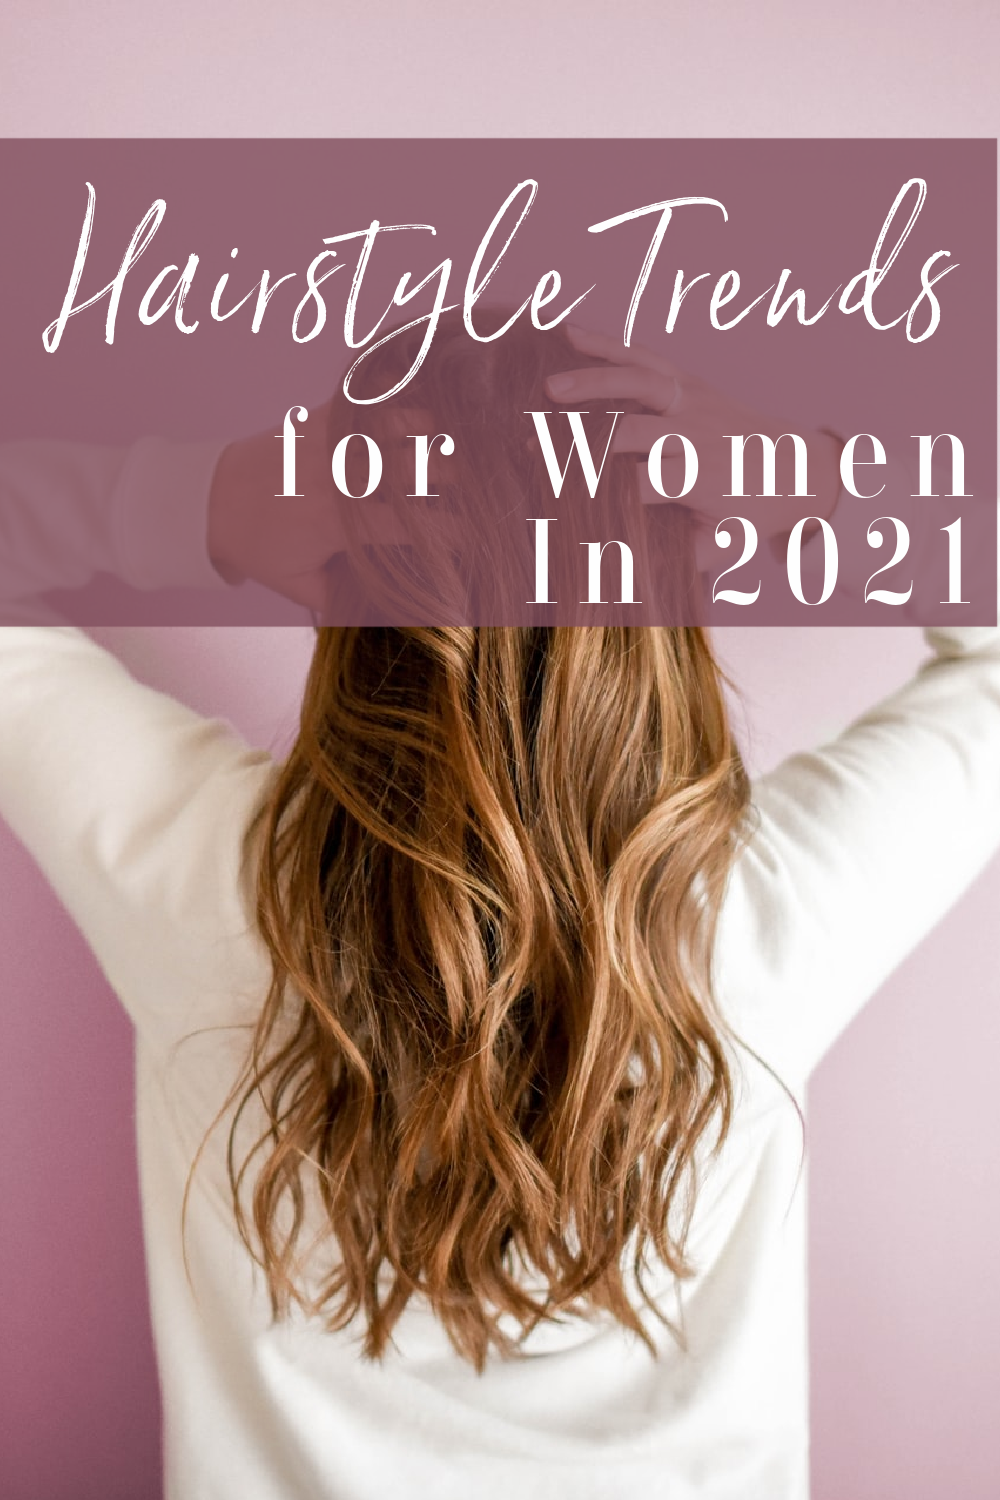 hairstyles-trends-for-women-you-will-see-in-2021